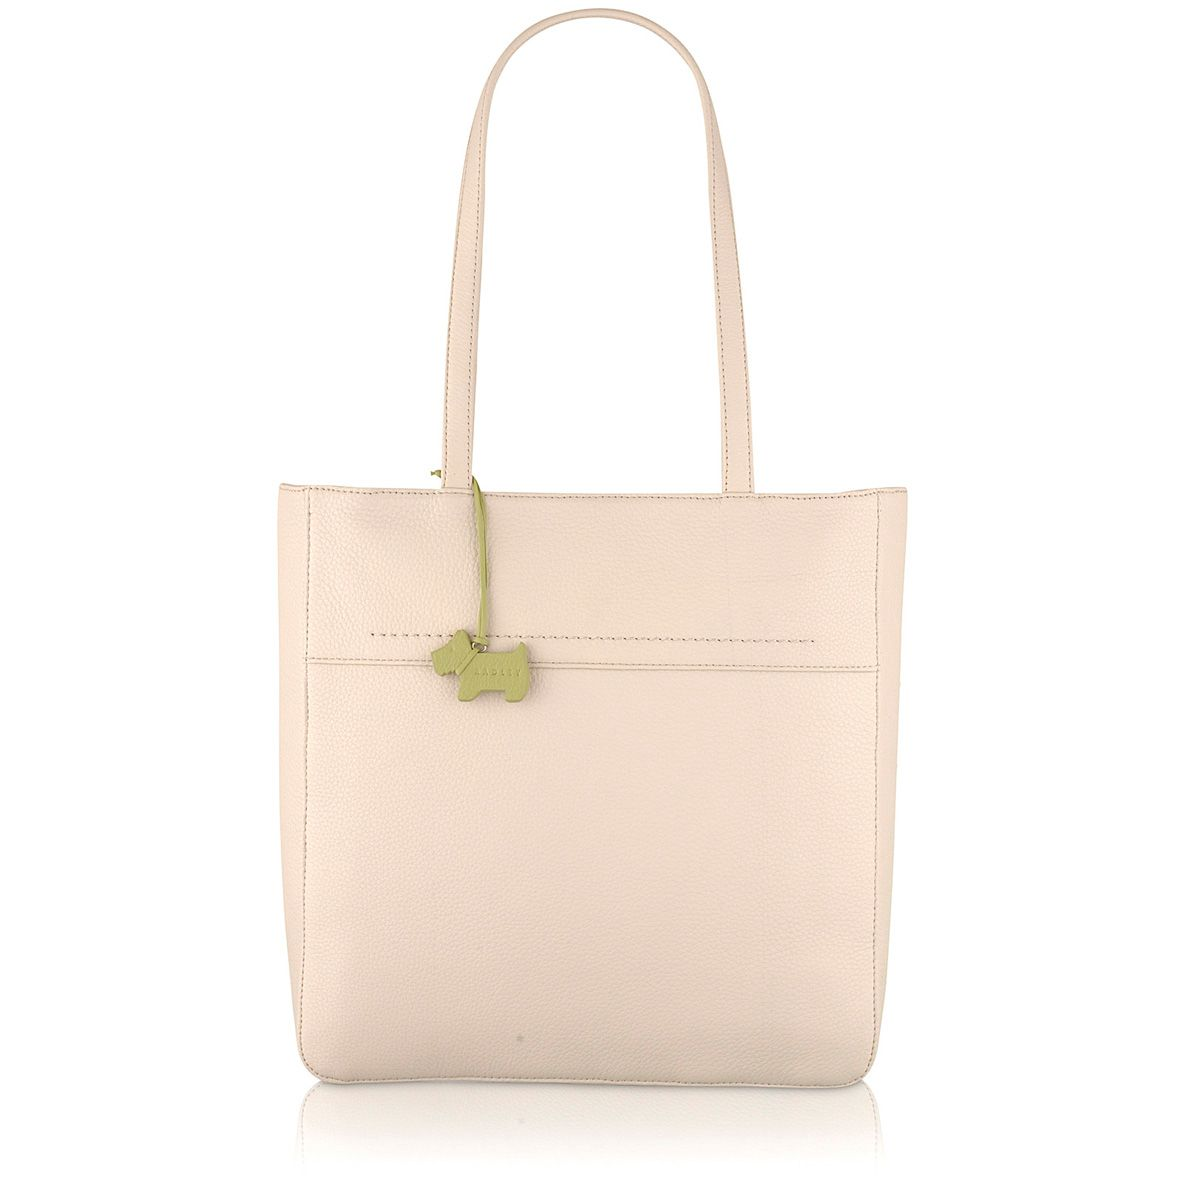 Dayton cream large leather tote bag